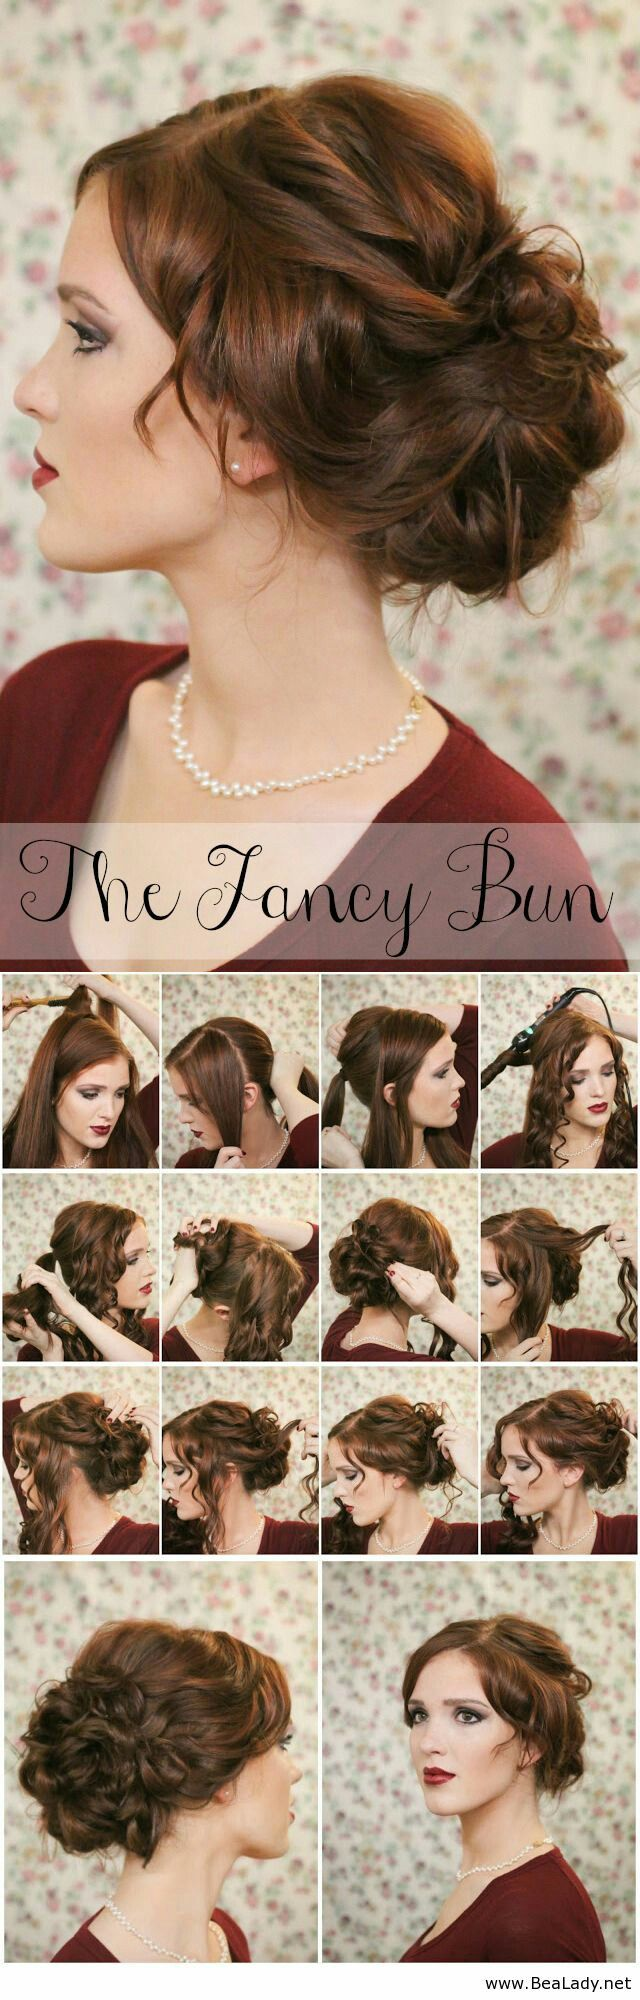 Pin by ashleigh bradford on military ball hair pinterest hair